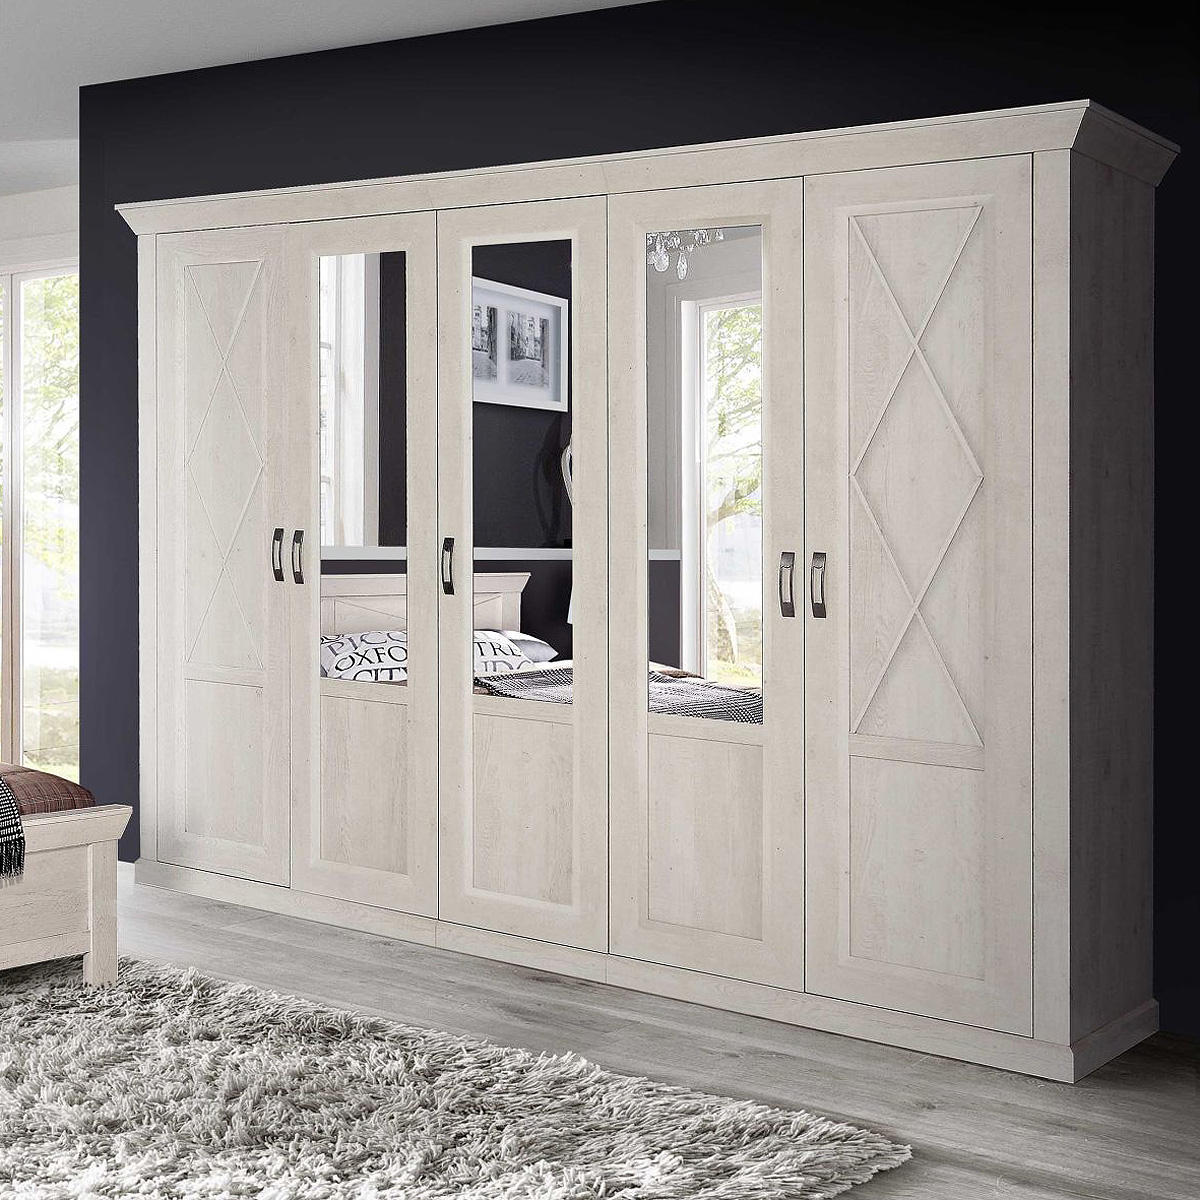 kleiderschrank kashmir schrank dreht renschrank in pinie wei mit spiegel 268 ebay. Black Bedroom Furniture Sets. Home Design Ideas